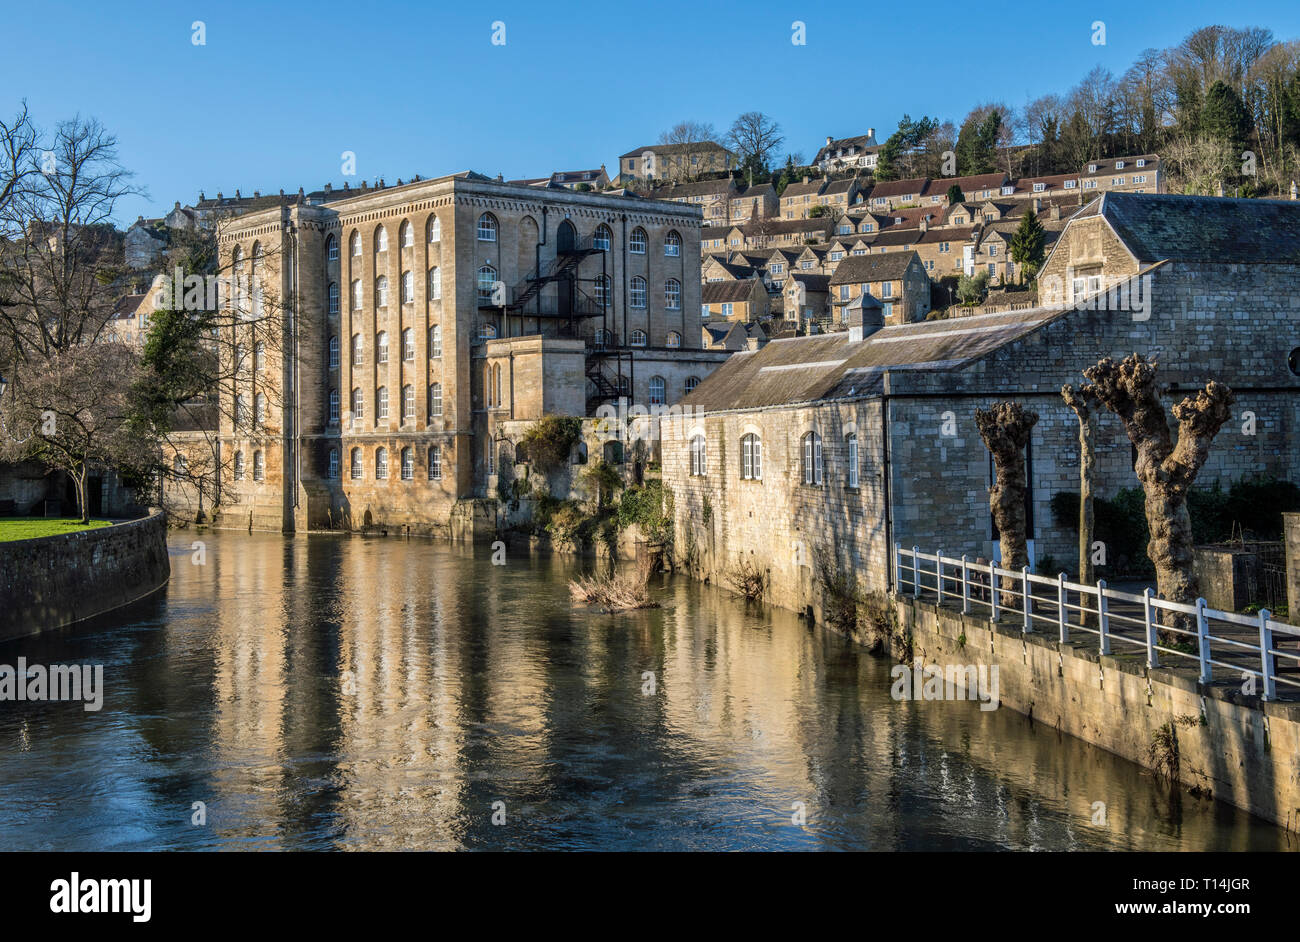 The Old Mill, now apartments, on the side of the River Avon at Bradford on Avon in West Wiltshire. Bradford on Avon grew rich from the wool trade. - Stock Image